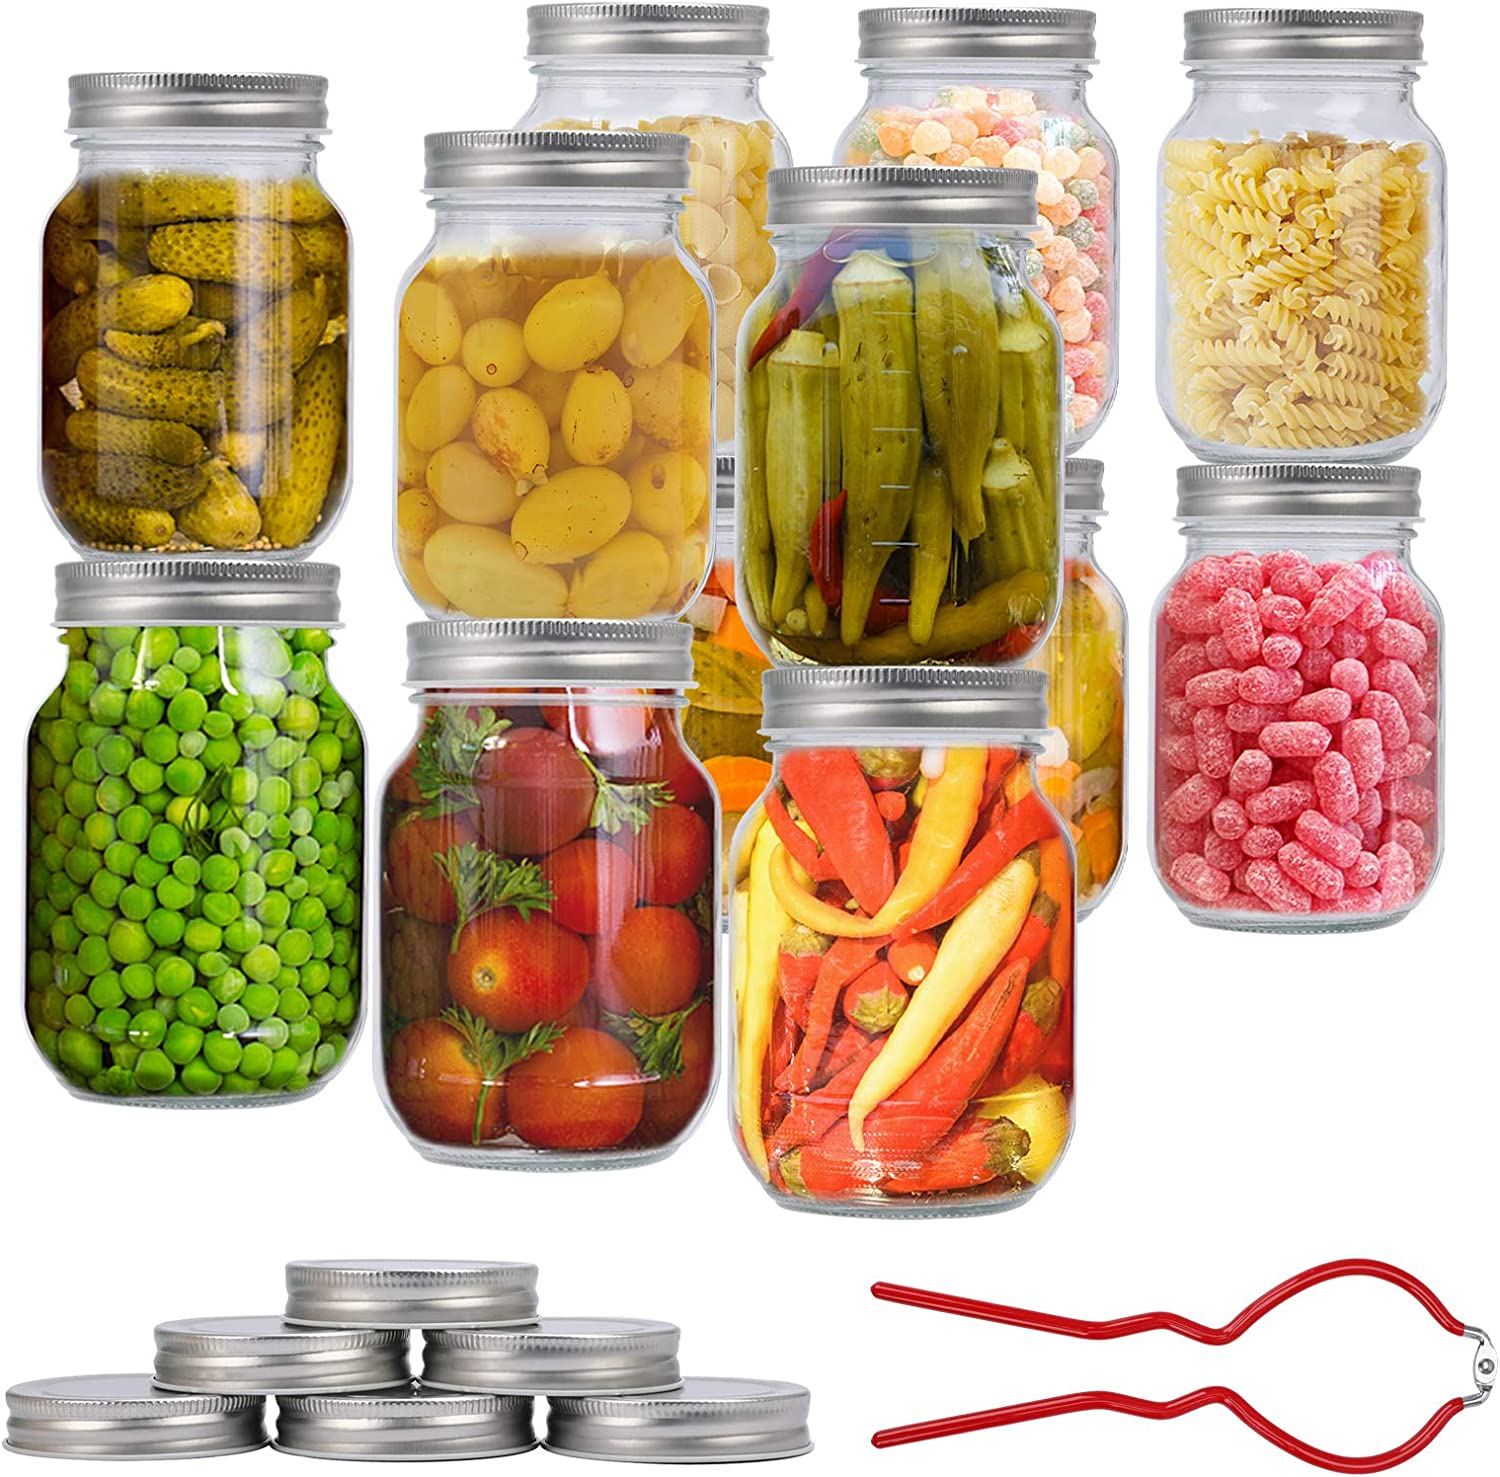 Mason Jars 16 Oz, 12 PCS Glass Regular Mouth Canning Jars with 24 Regular Silver Metal Airtight Lids & Corkscrew, for Jelly, Jam, Honey, Baby Foods, Spices and Dry Food Storage